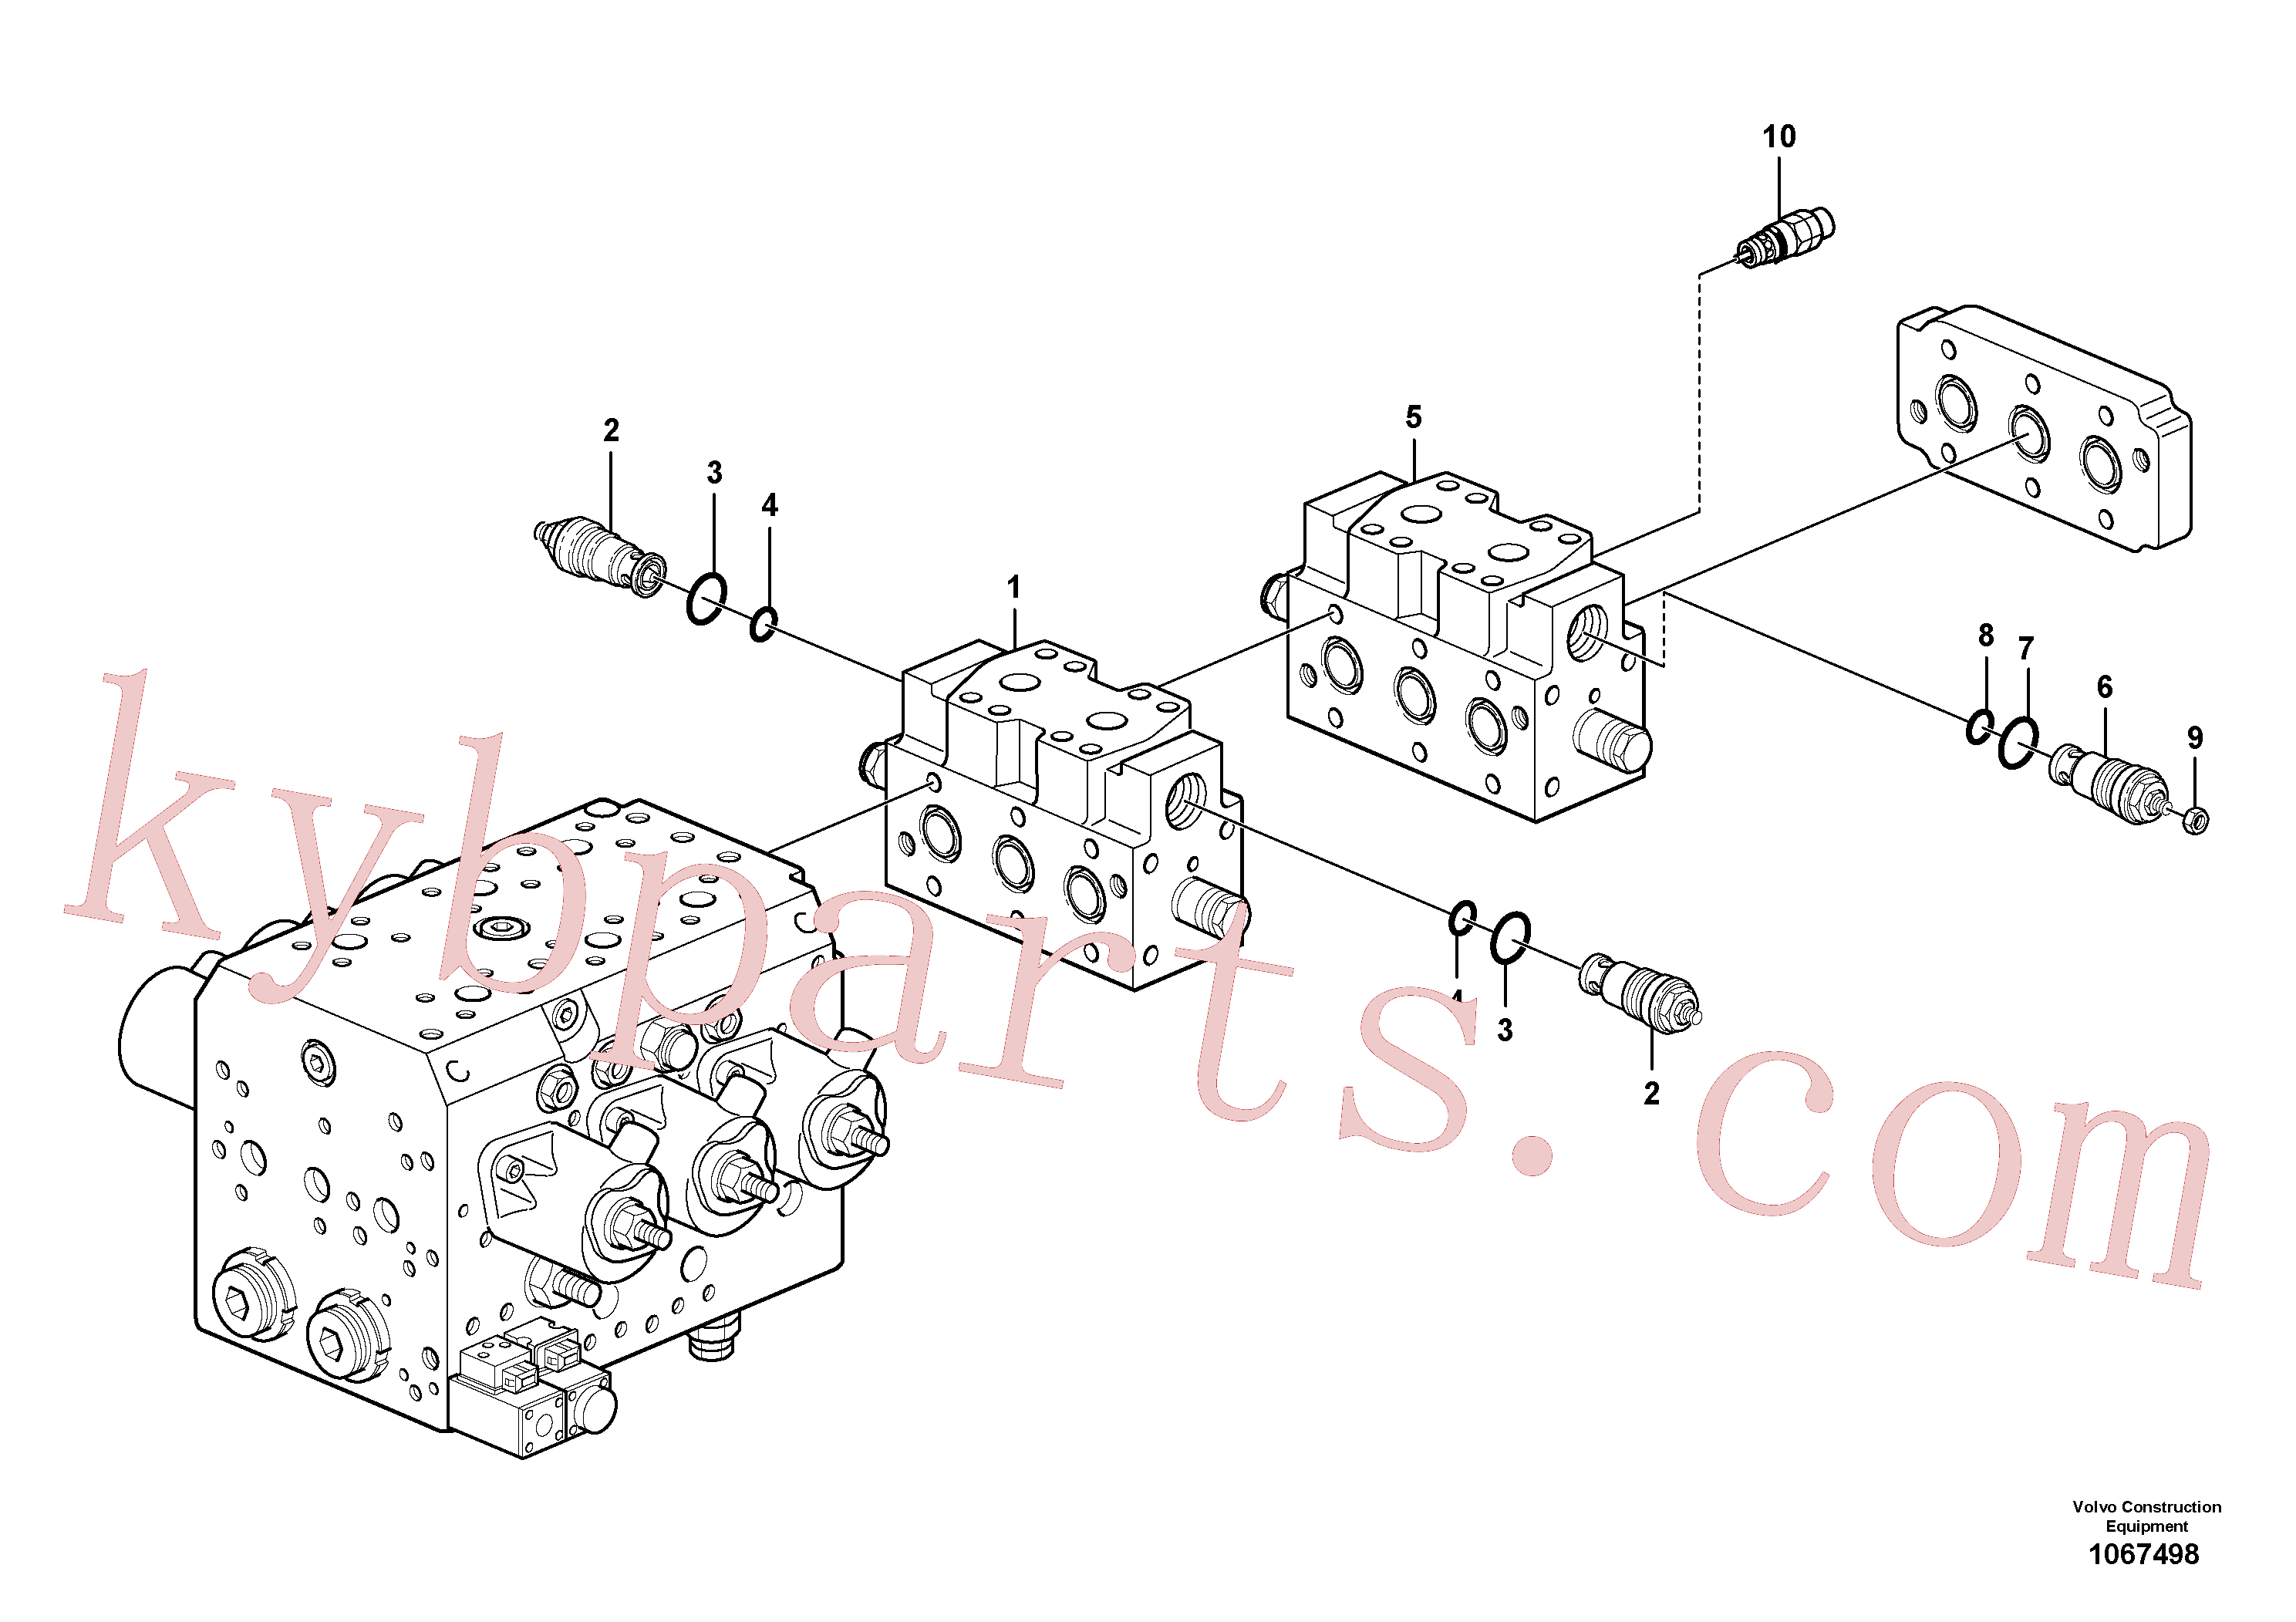 VOE14641021 for Volvo Valve(1067498 assembly)